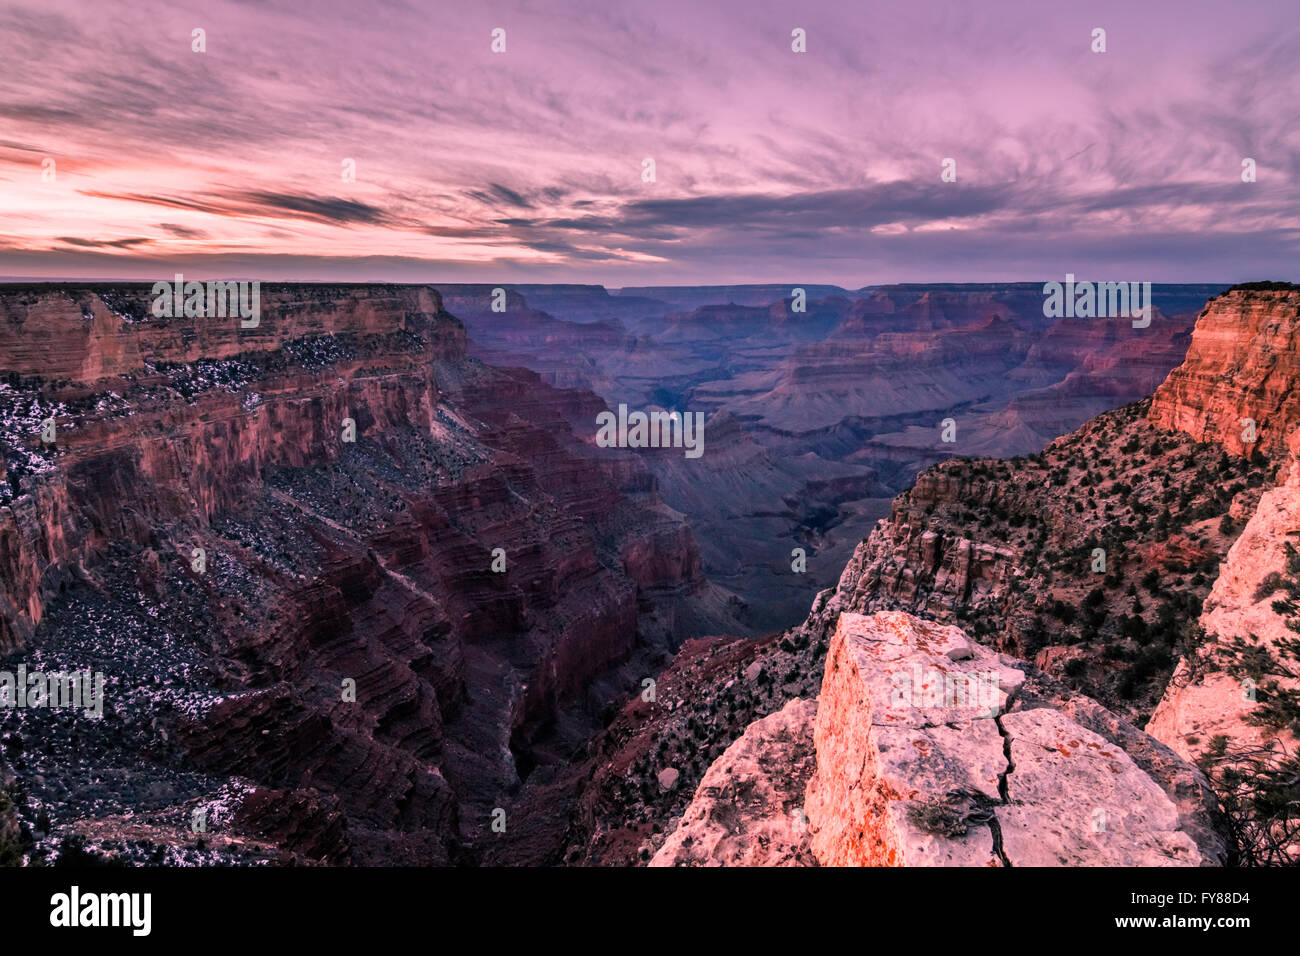 The rocks of the Grand Canyon reflecting the pink of the Arizona sunset Stock Photo